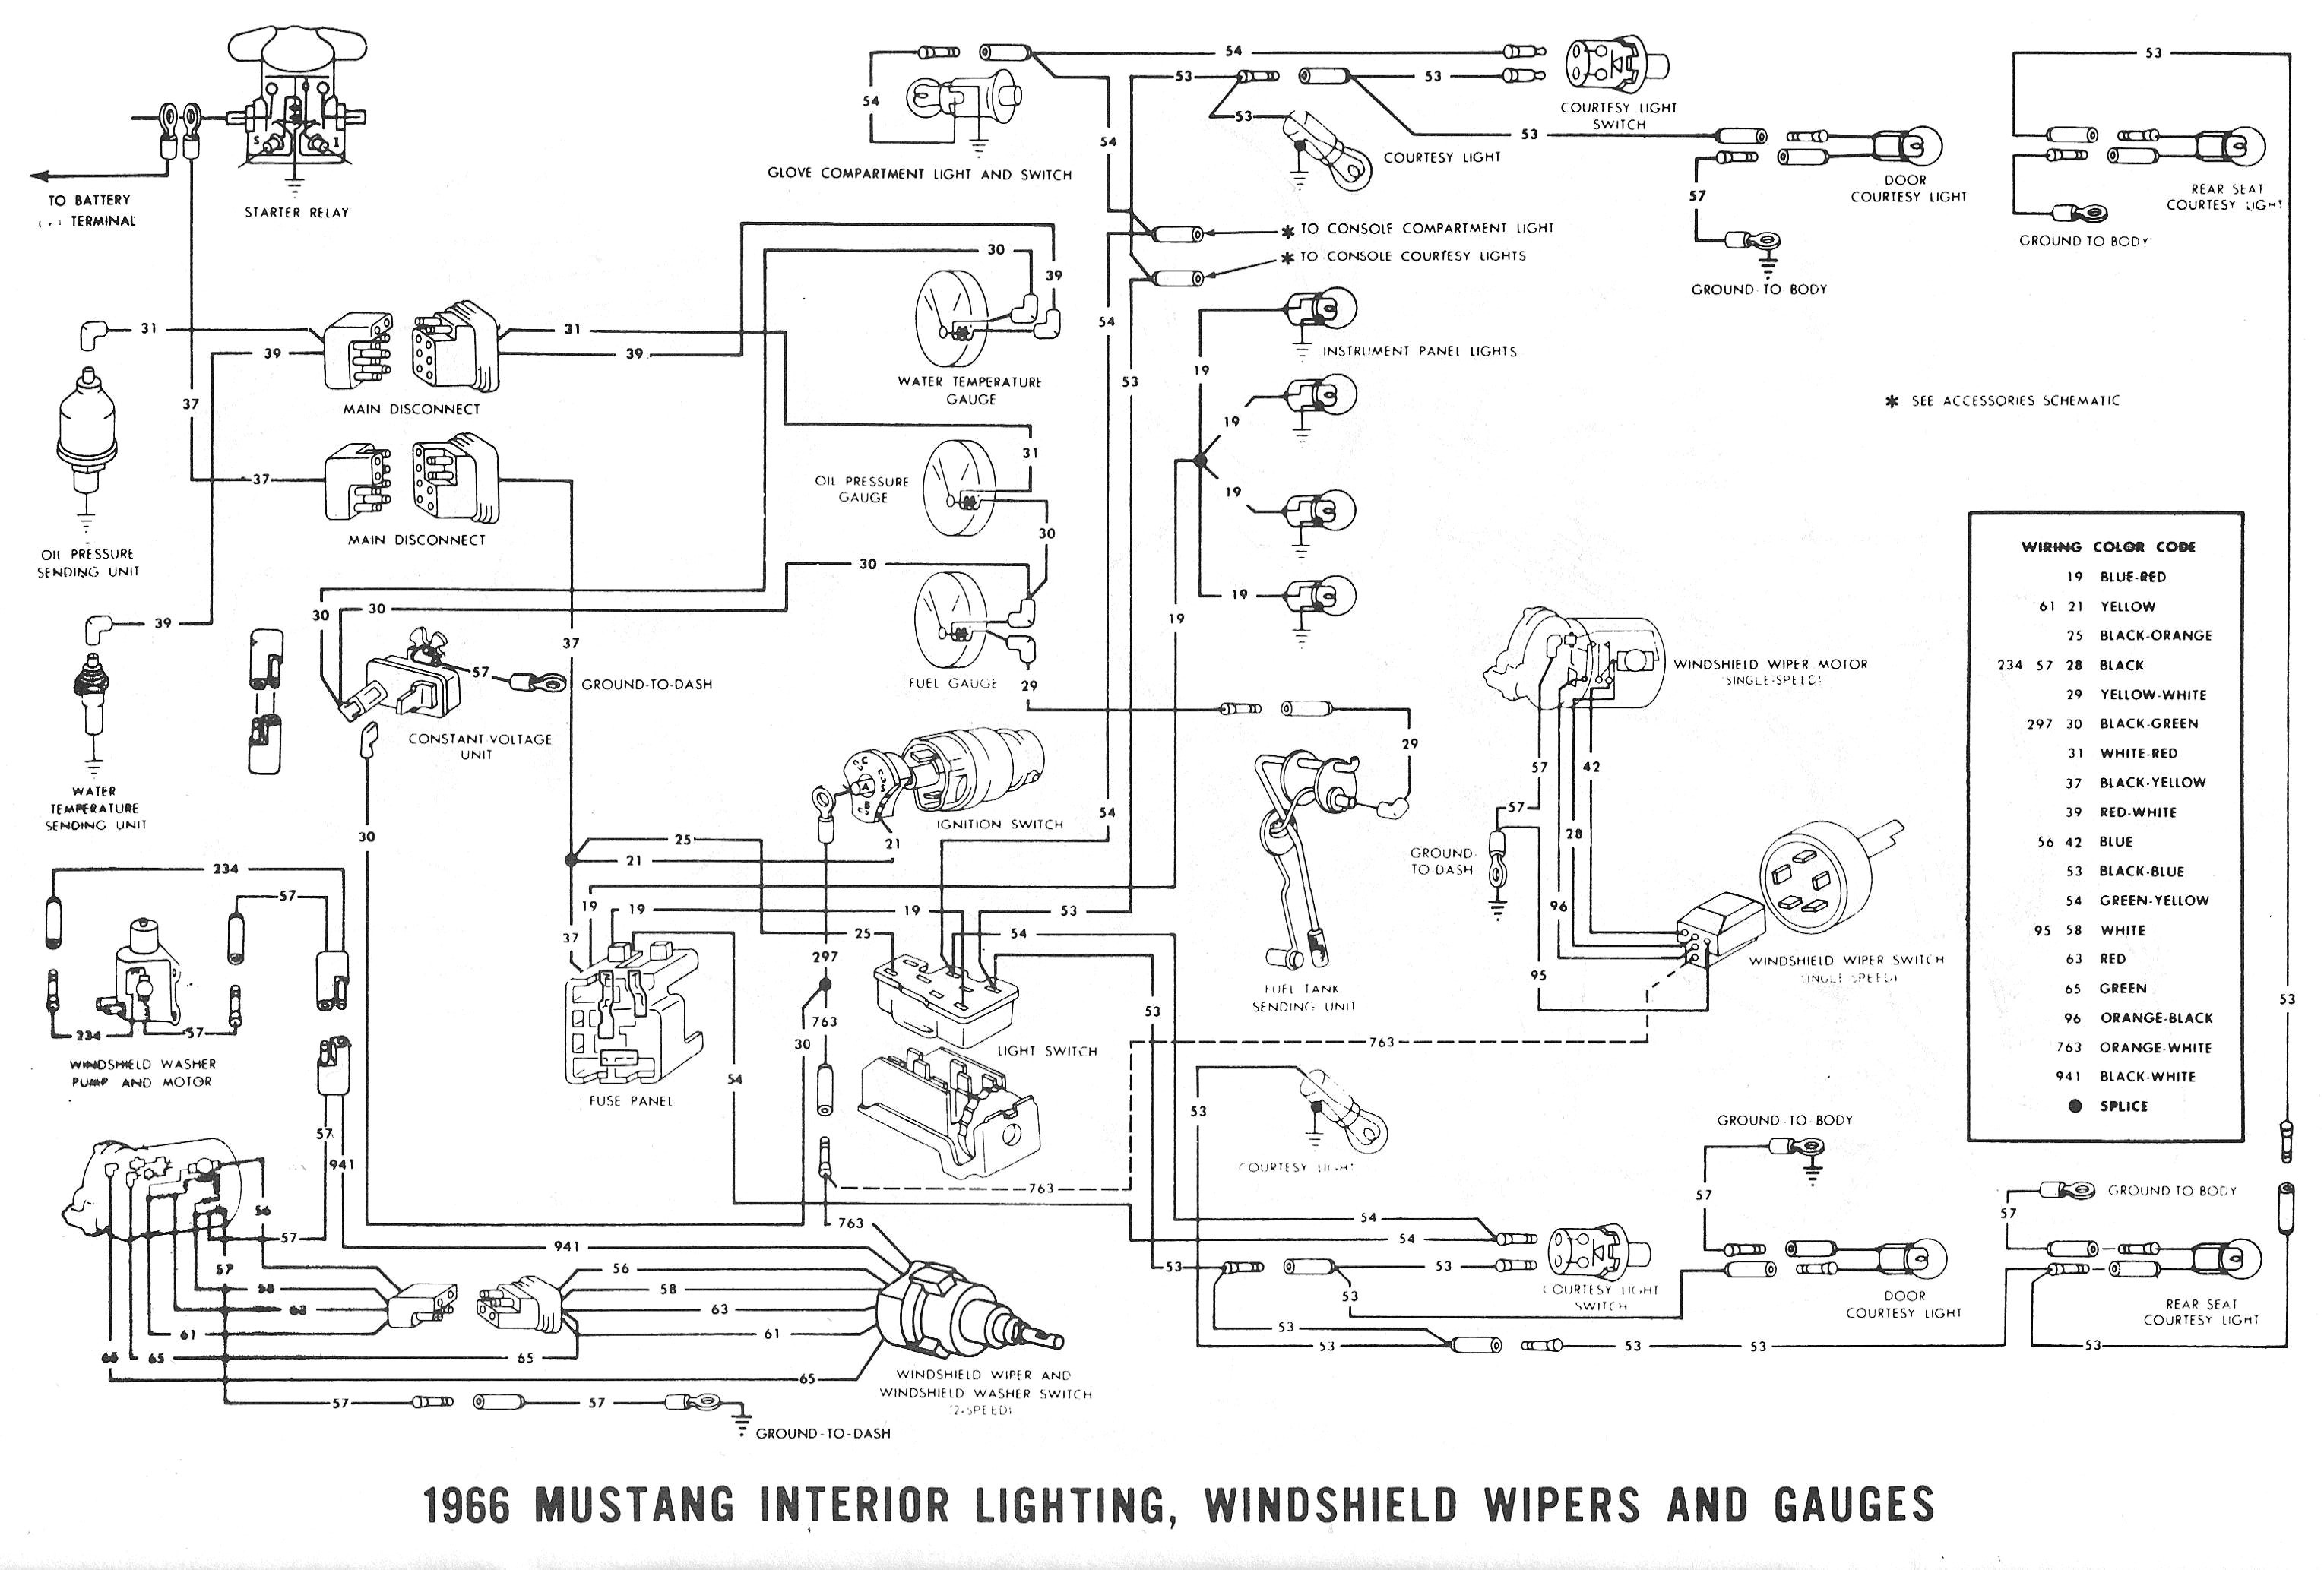 Painless Wiring Diagram Wipers Great Installation Of Mustang 1967 Wiper Motor Todays Rh 18 13 1813weddingbarn Com Gm Column